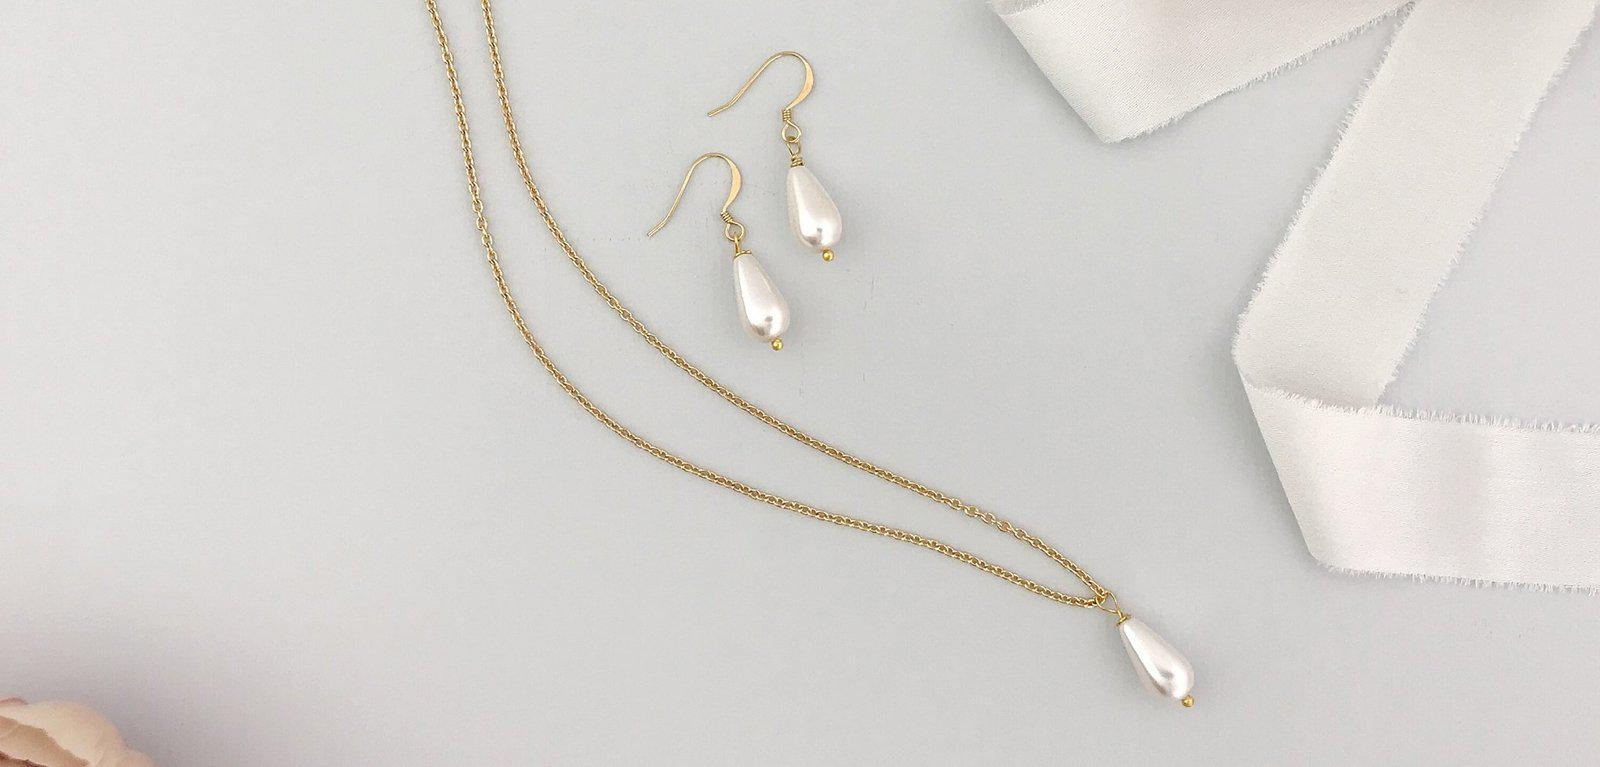 Pearl drop wedding necklace and earring set in gold - Hermie